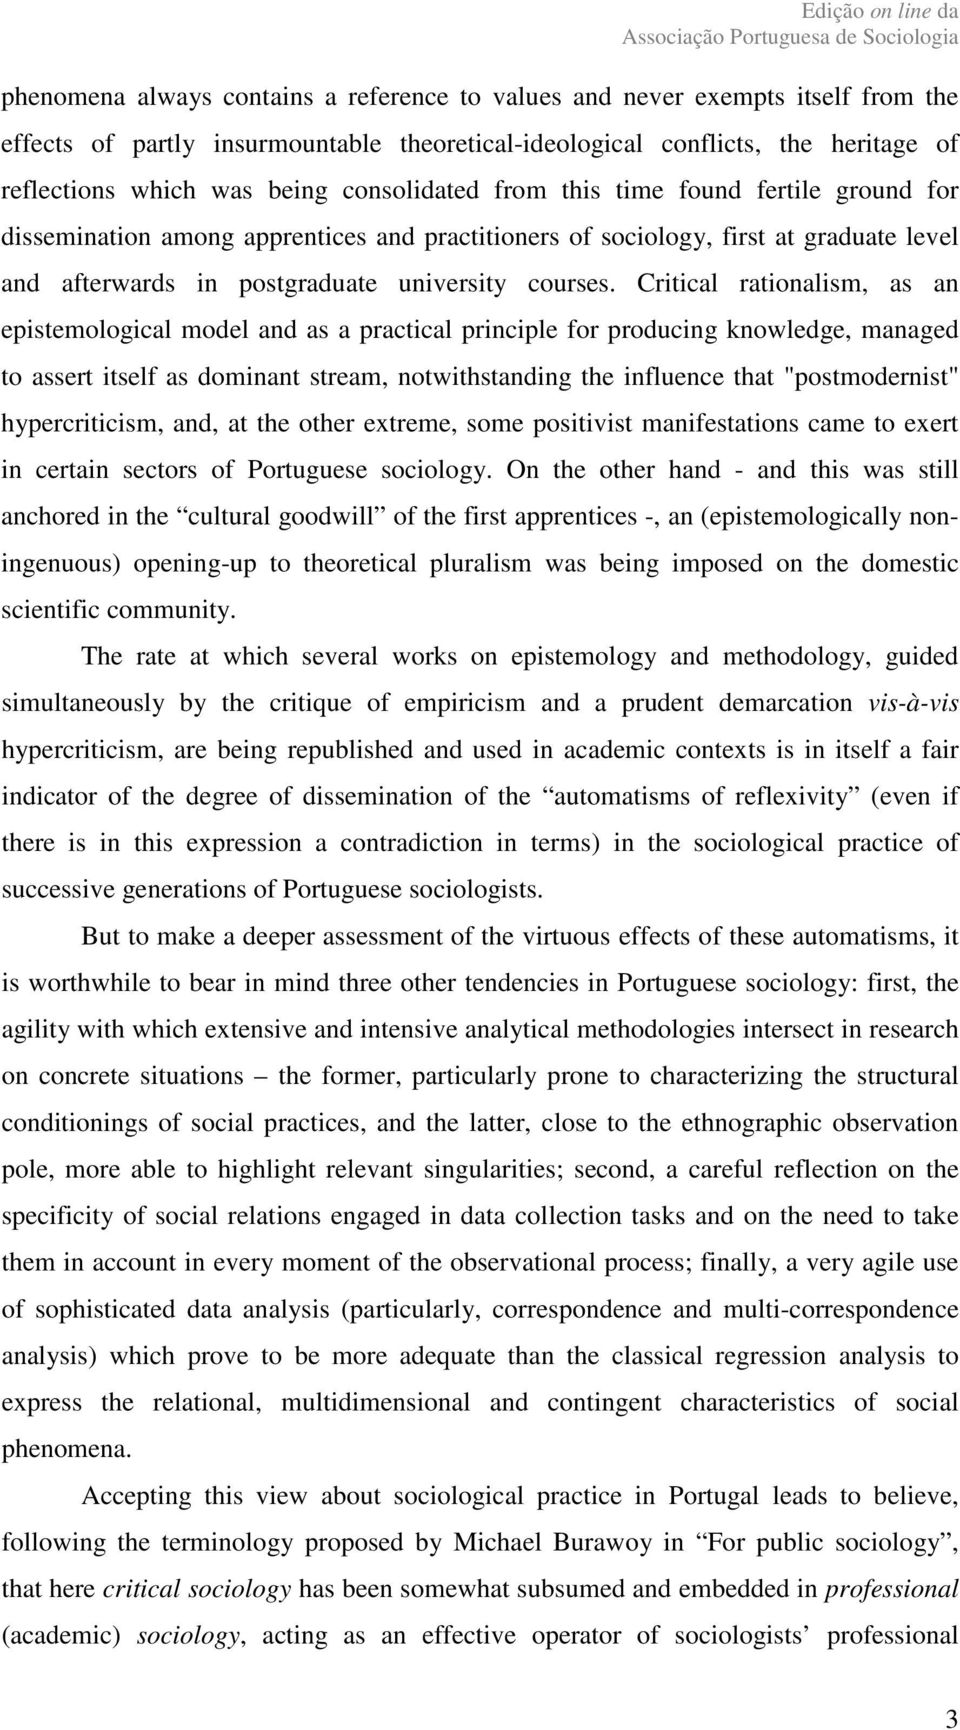 "Critical rationalism, as an epistemological model and as a practical principle for producing knowledge, managed to assert itself as dominant stream, notwithstanding the influence that ""postmodernist"""